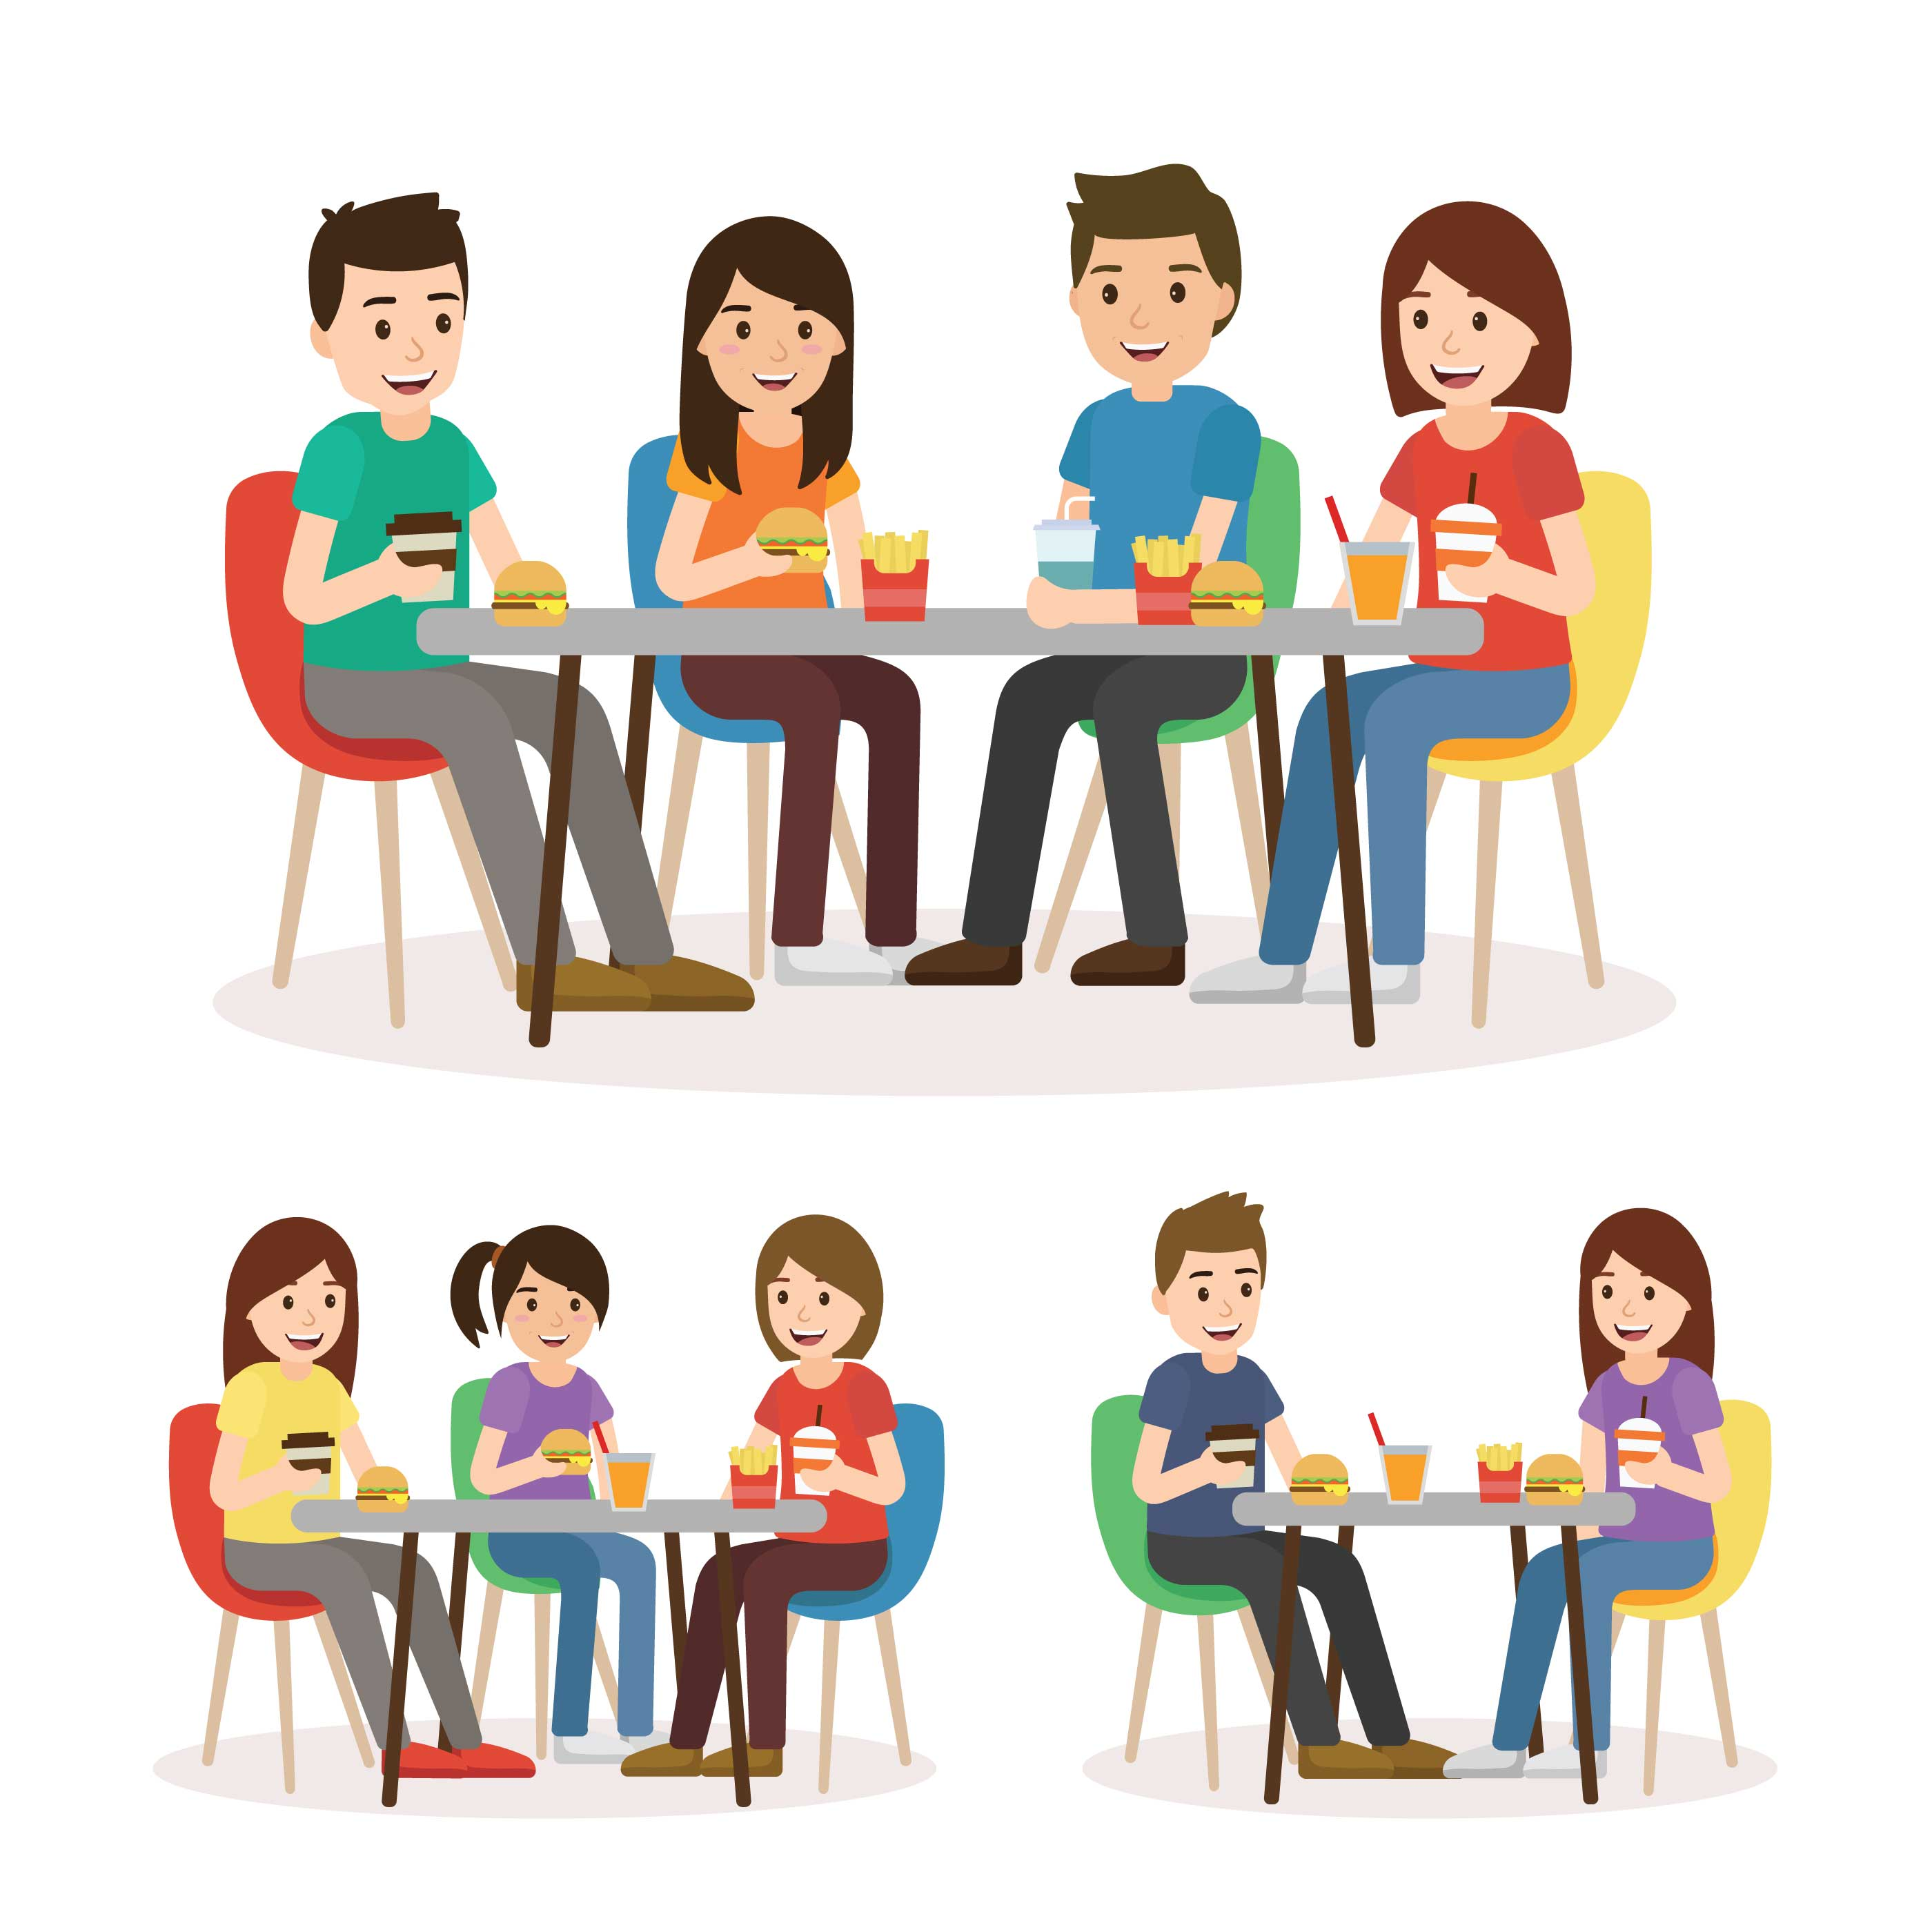 People Eating In A Food Court - Download Free Vectors ...